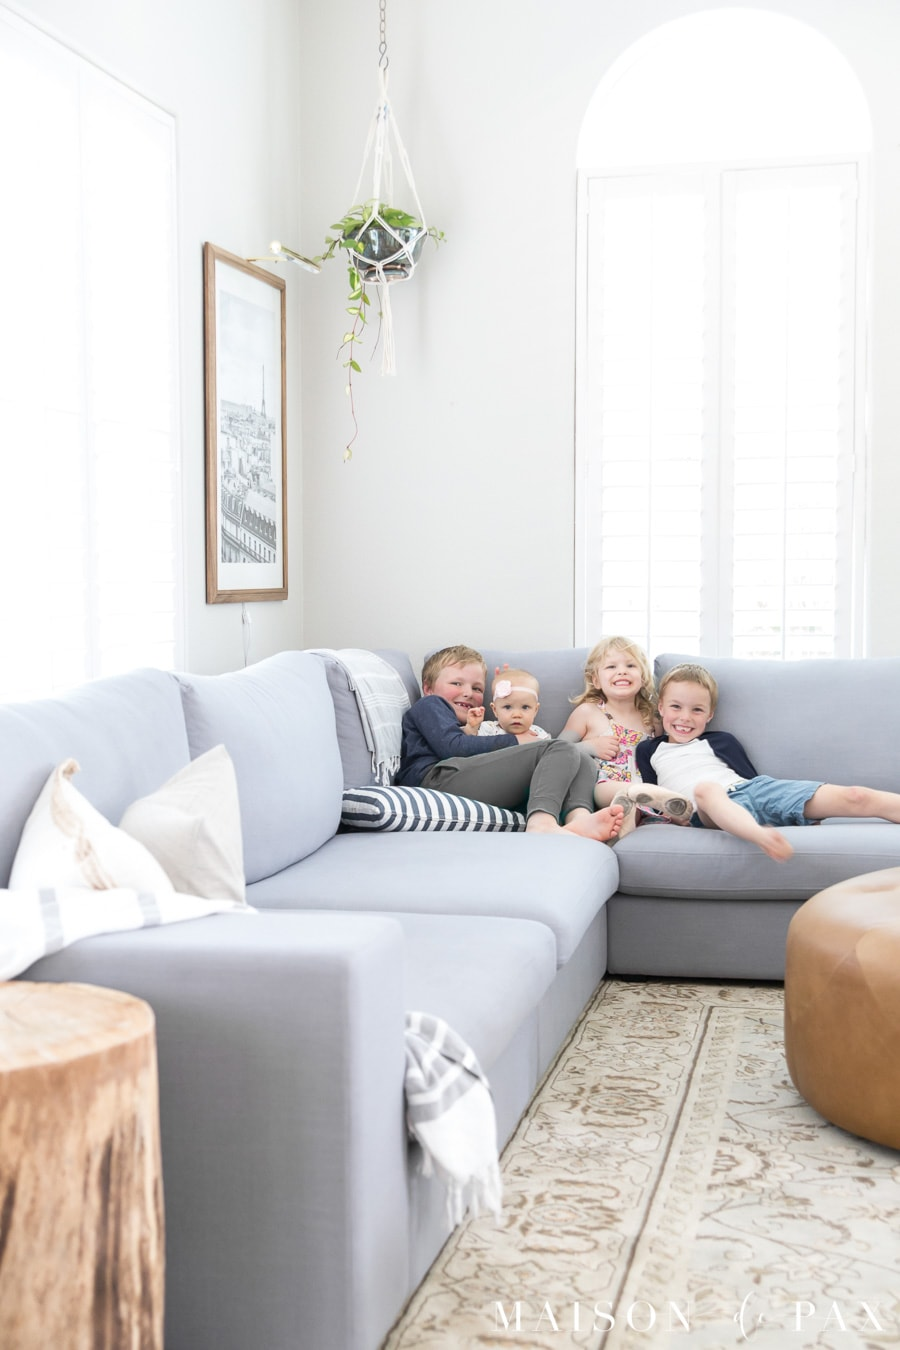 How to decorate a living room with a sectional - Maison de Pax on Room Decoration  id=79167